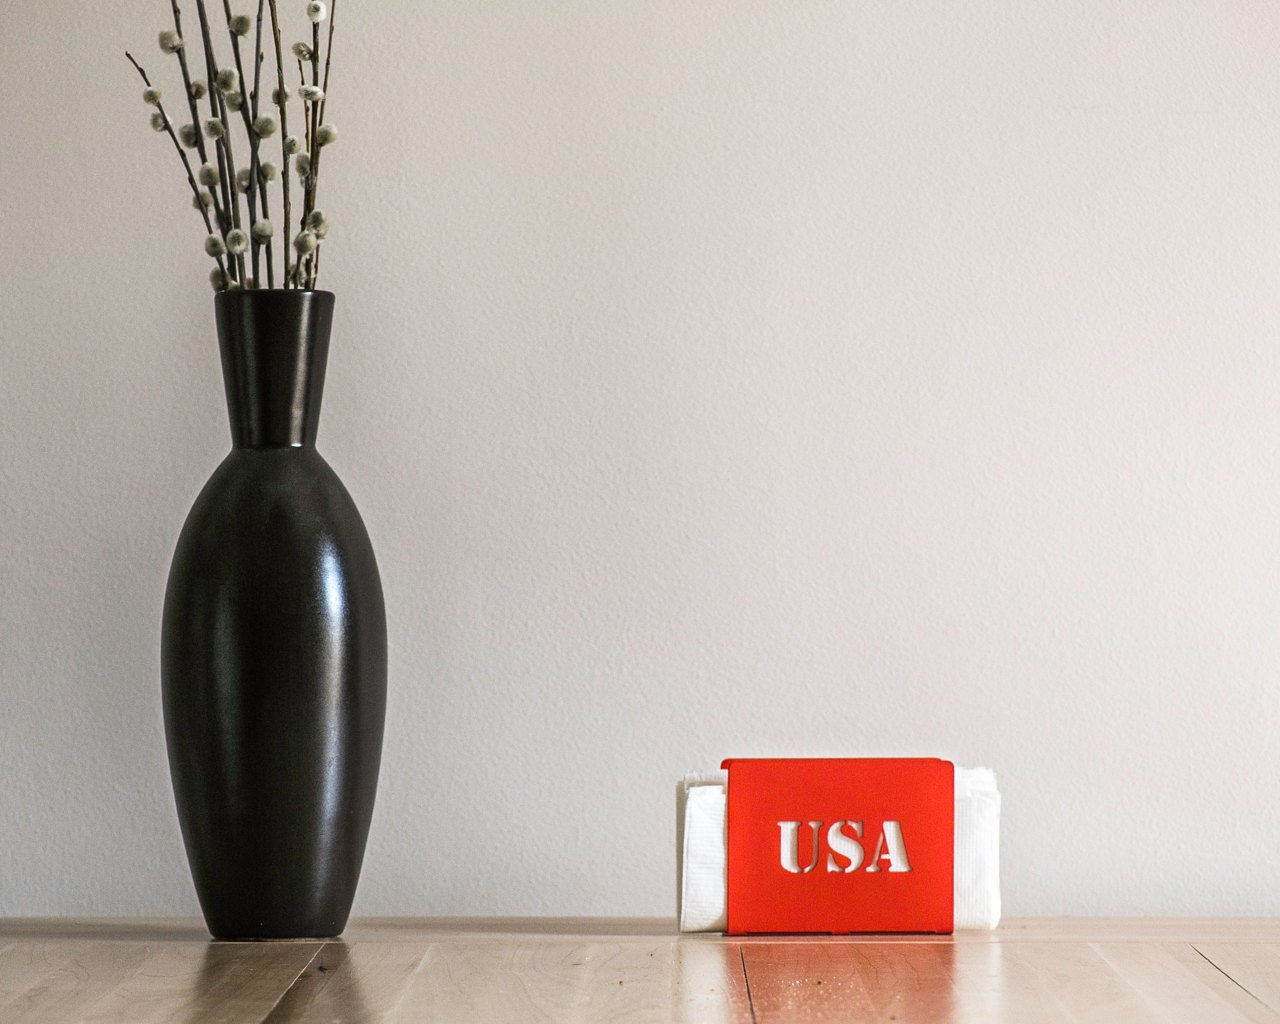 Metal napkin holder // USA // modern functional kitchen decor // centre piece patriotic americana housewarming present gift // FREE SHIPPING - Design Atelier Article